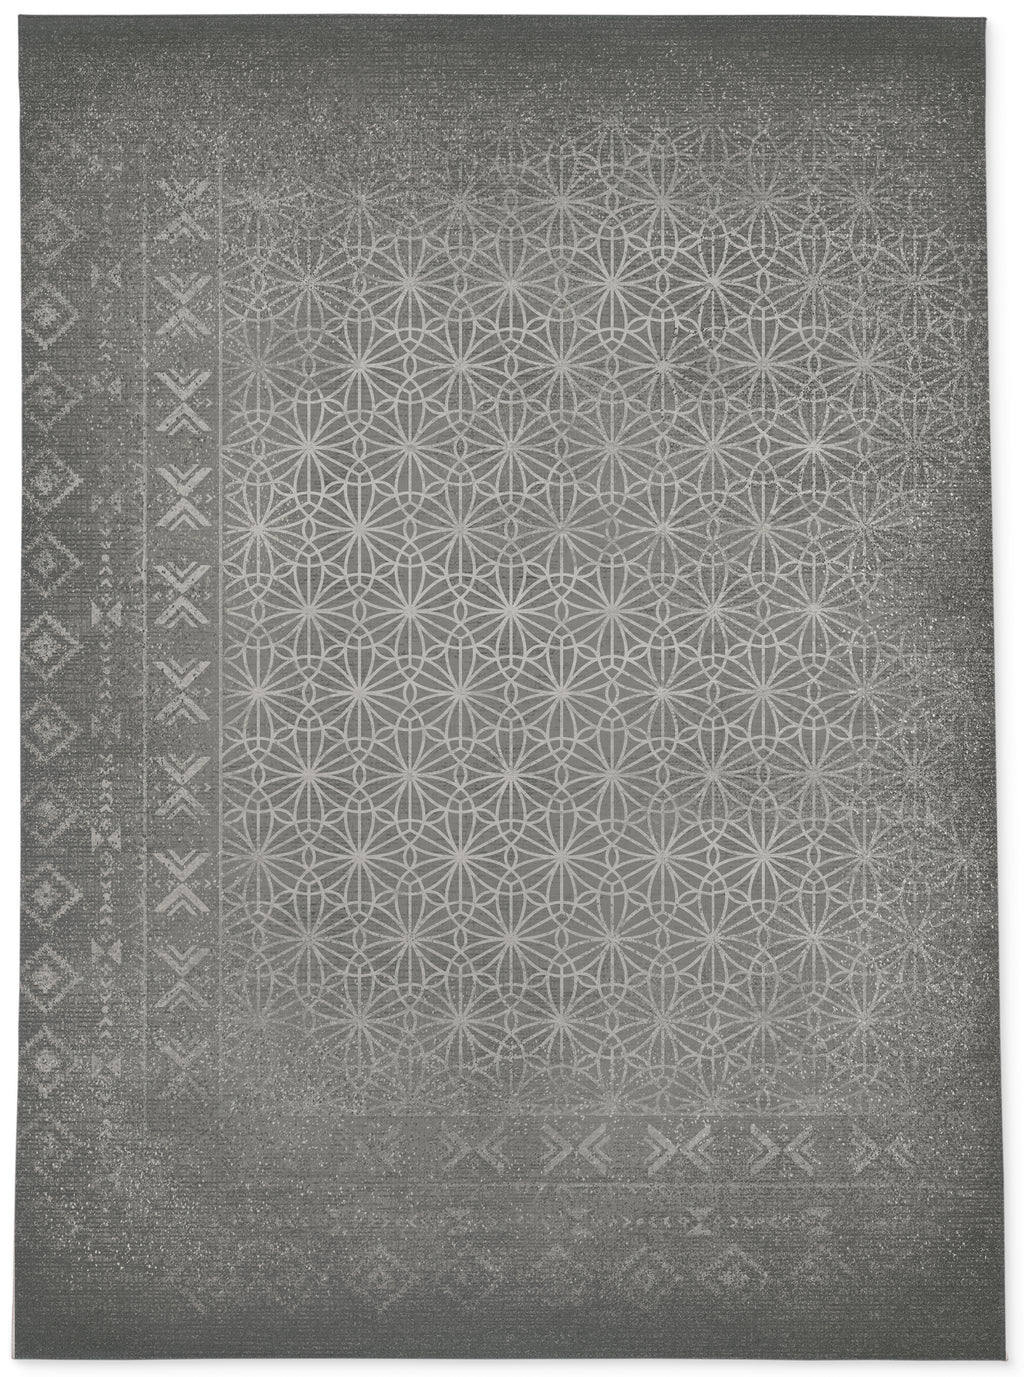 AALIYAH GRAY Area Rug By Kavka Designs